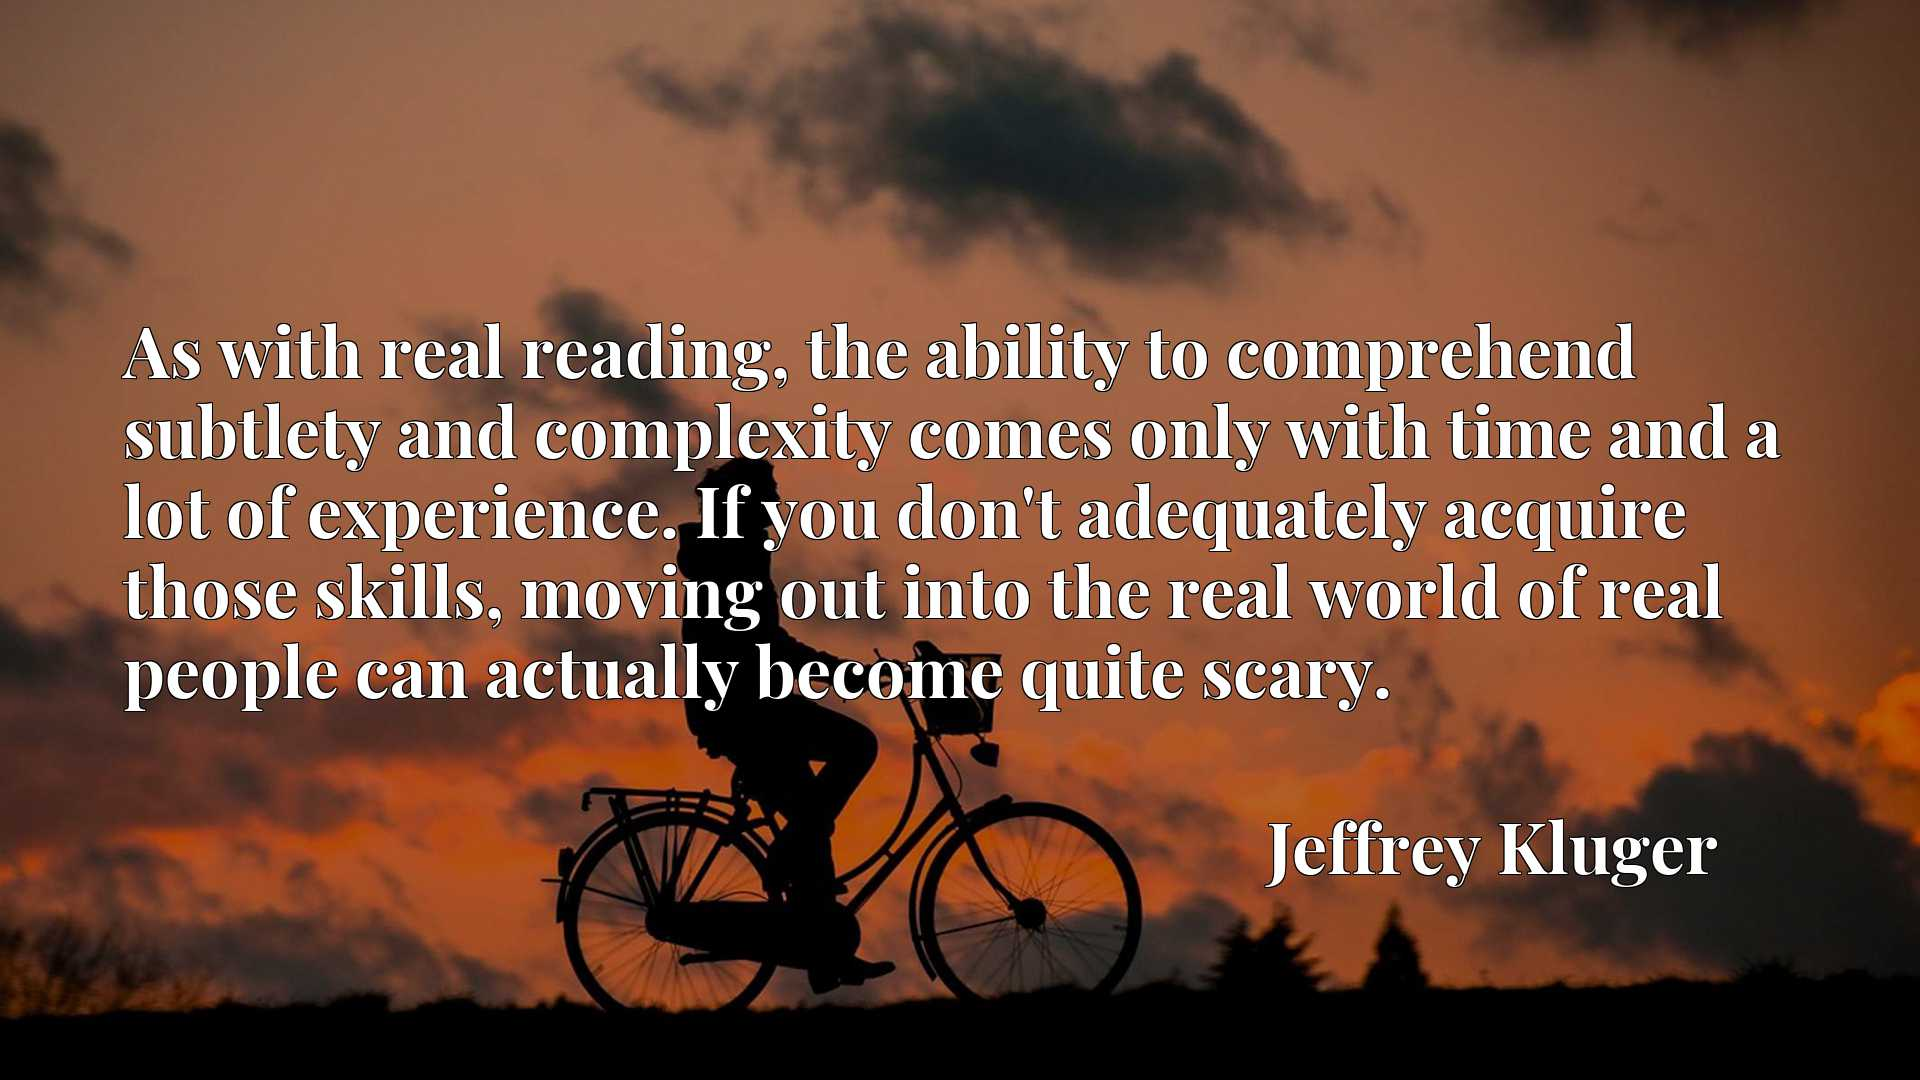 As with real reading, the ability to comprehend subtlety and complexity comes only with time and a lot of experience. If you don't adequately acquire those skills, moving out into the real world of real people can actually become quite scary.